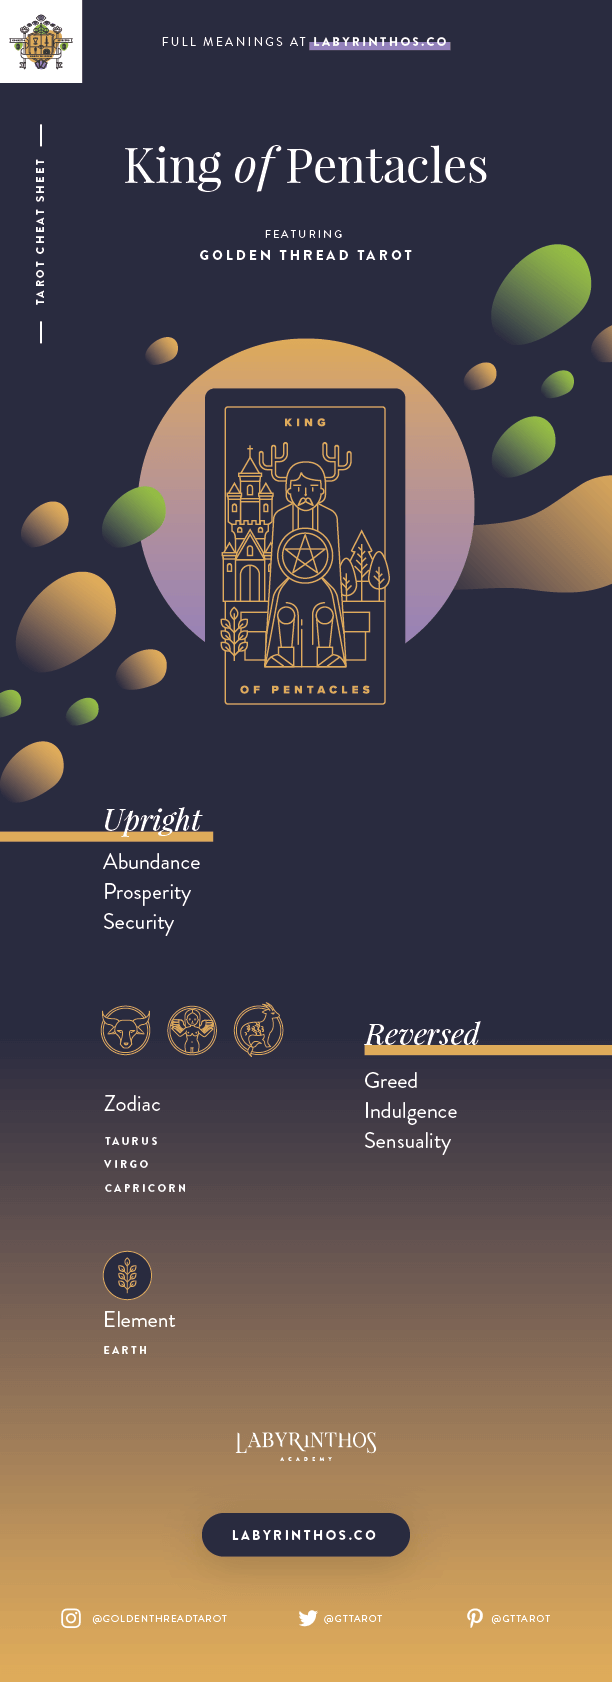 King of Pentacles Meaning - Tarot Card Meanings Cheat Sheet. Art from Golden Thread Tarot. | learn tarot, tarot classes, tarot cheat sheet, tarot keywords, magick, mysticism, wicca, paganism